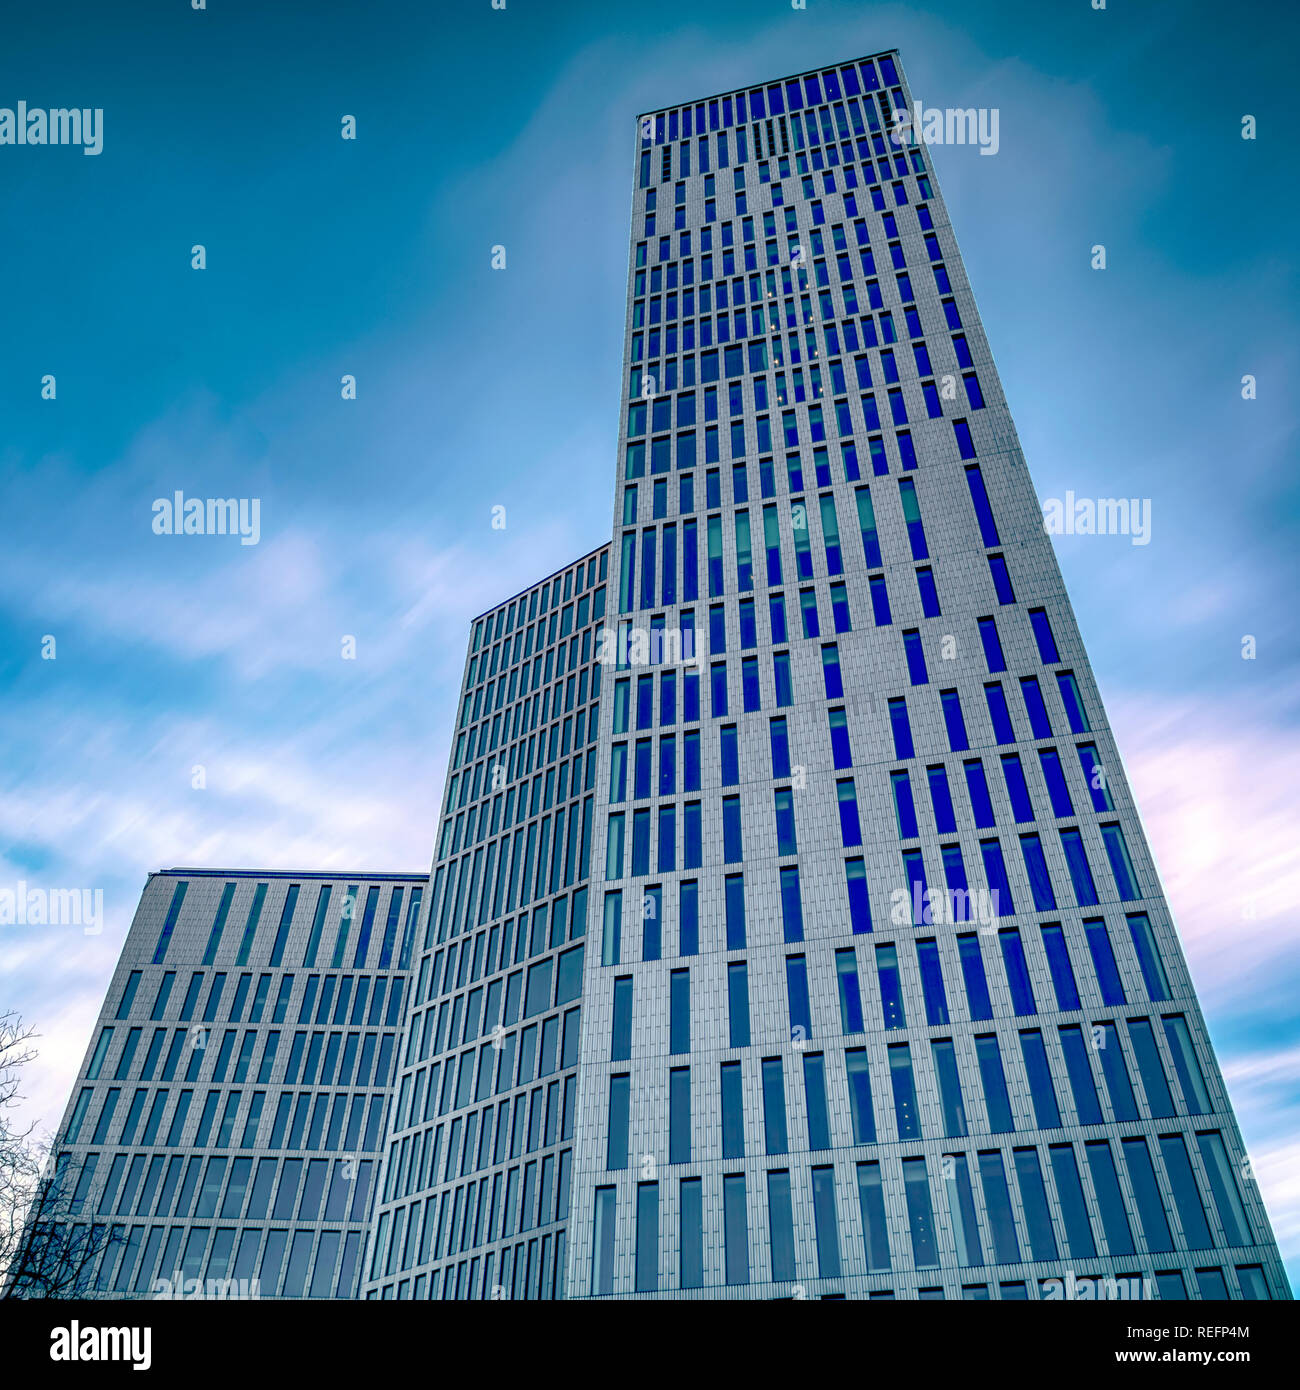 MALMO, SWEDEN - JANUARY 05, 2019: The new building blocks Malmo Live, that Consist of apartments, hotels, congress and concert hall behind the world m Stock Photo